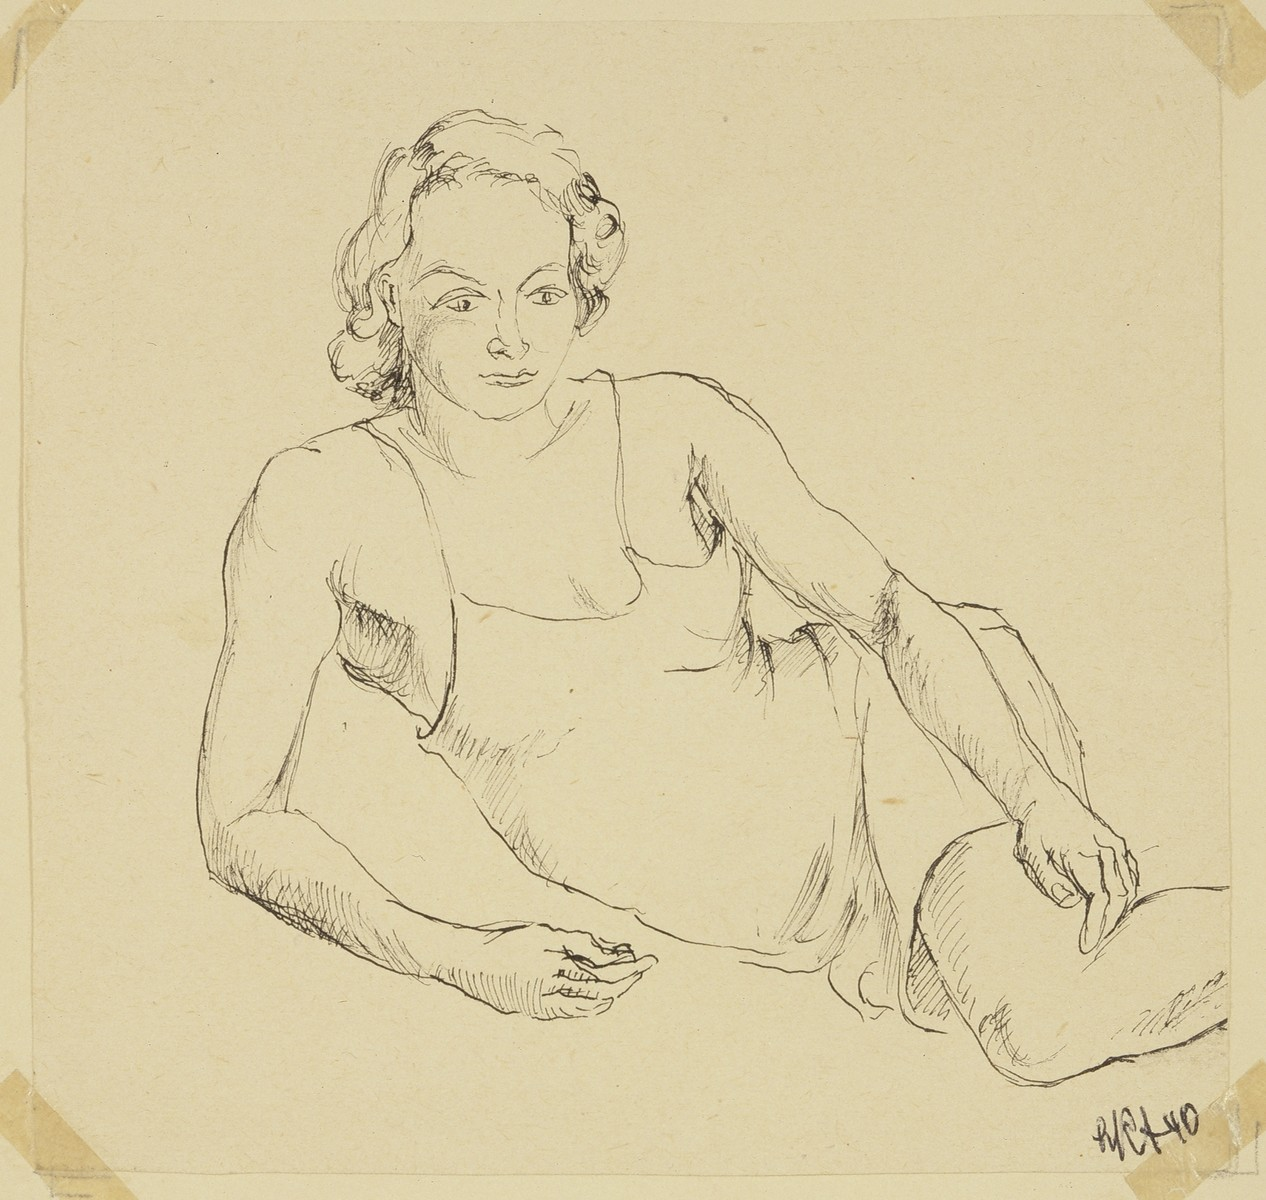 """Woman in her Slip"" by Lili Andrieux."